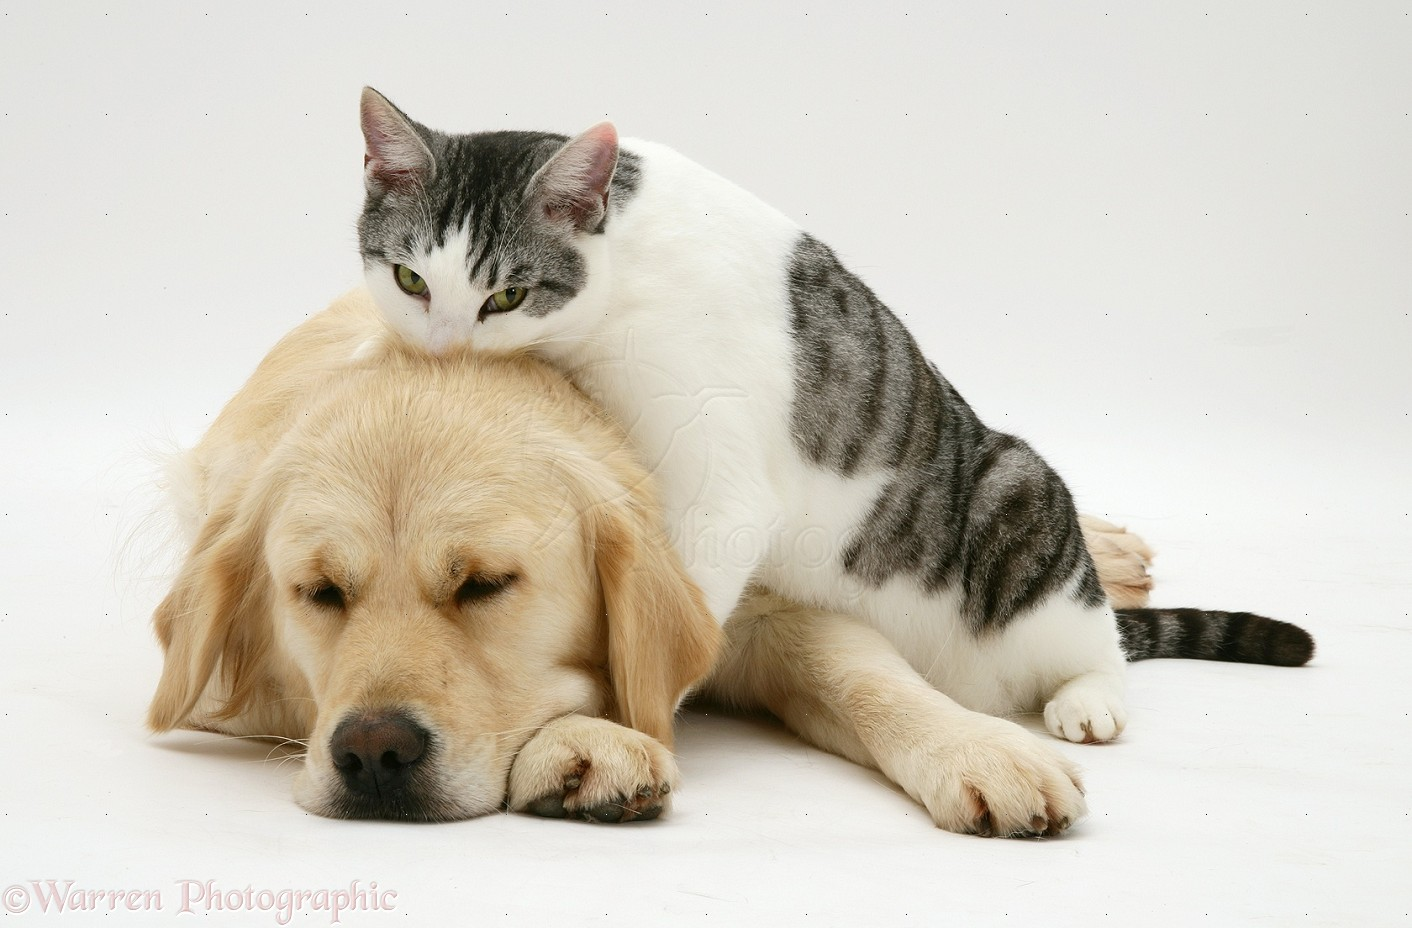 Picyures Of Cats And Dogs